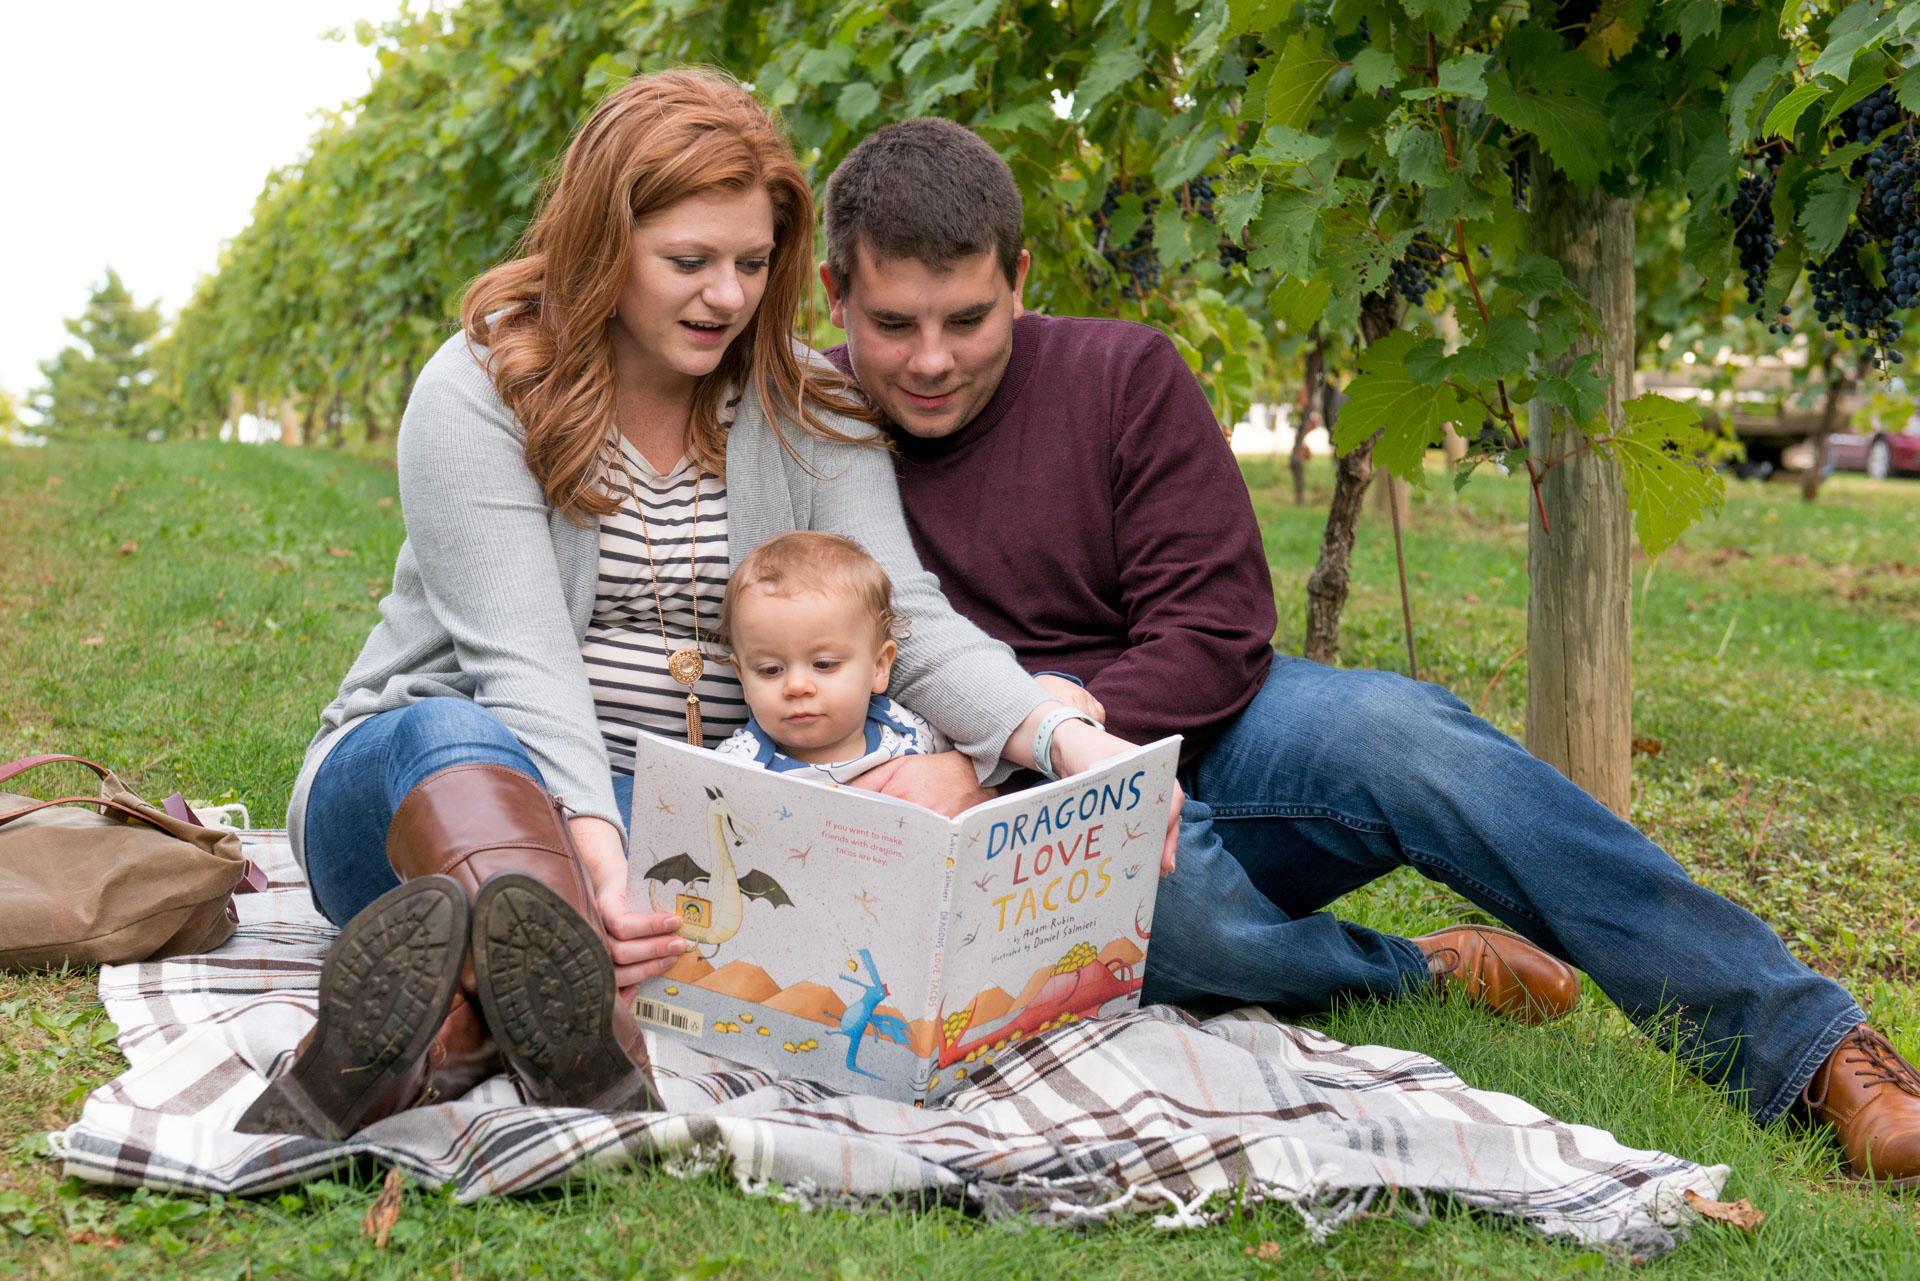 Family photography session with toddler at Aamodt's Apple Farm. Sitting in the grapevines reading a book.